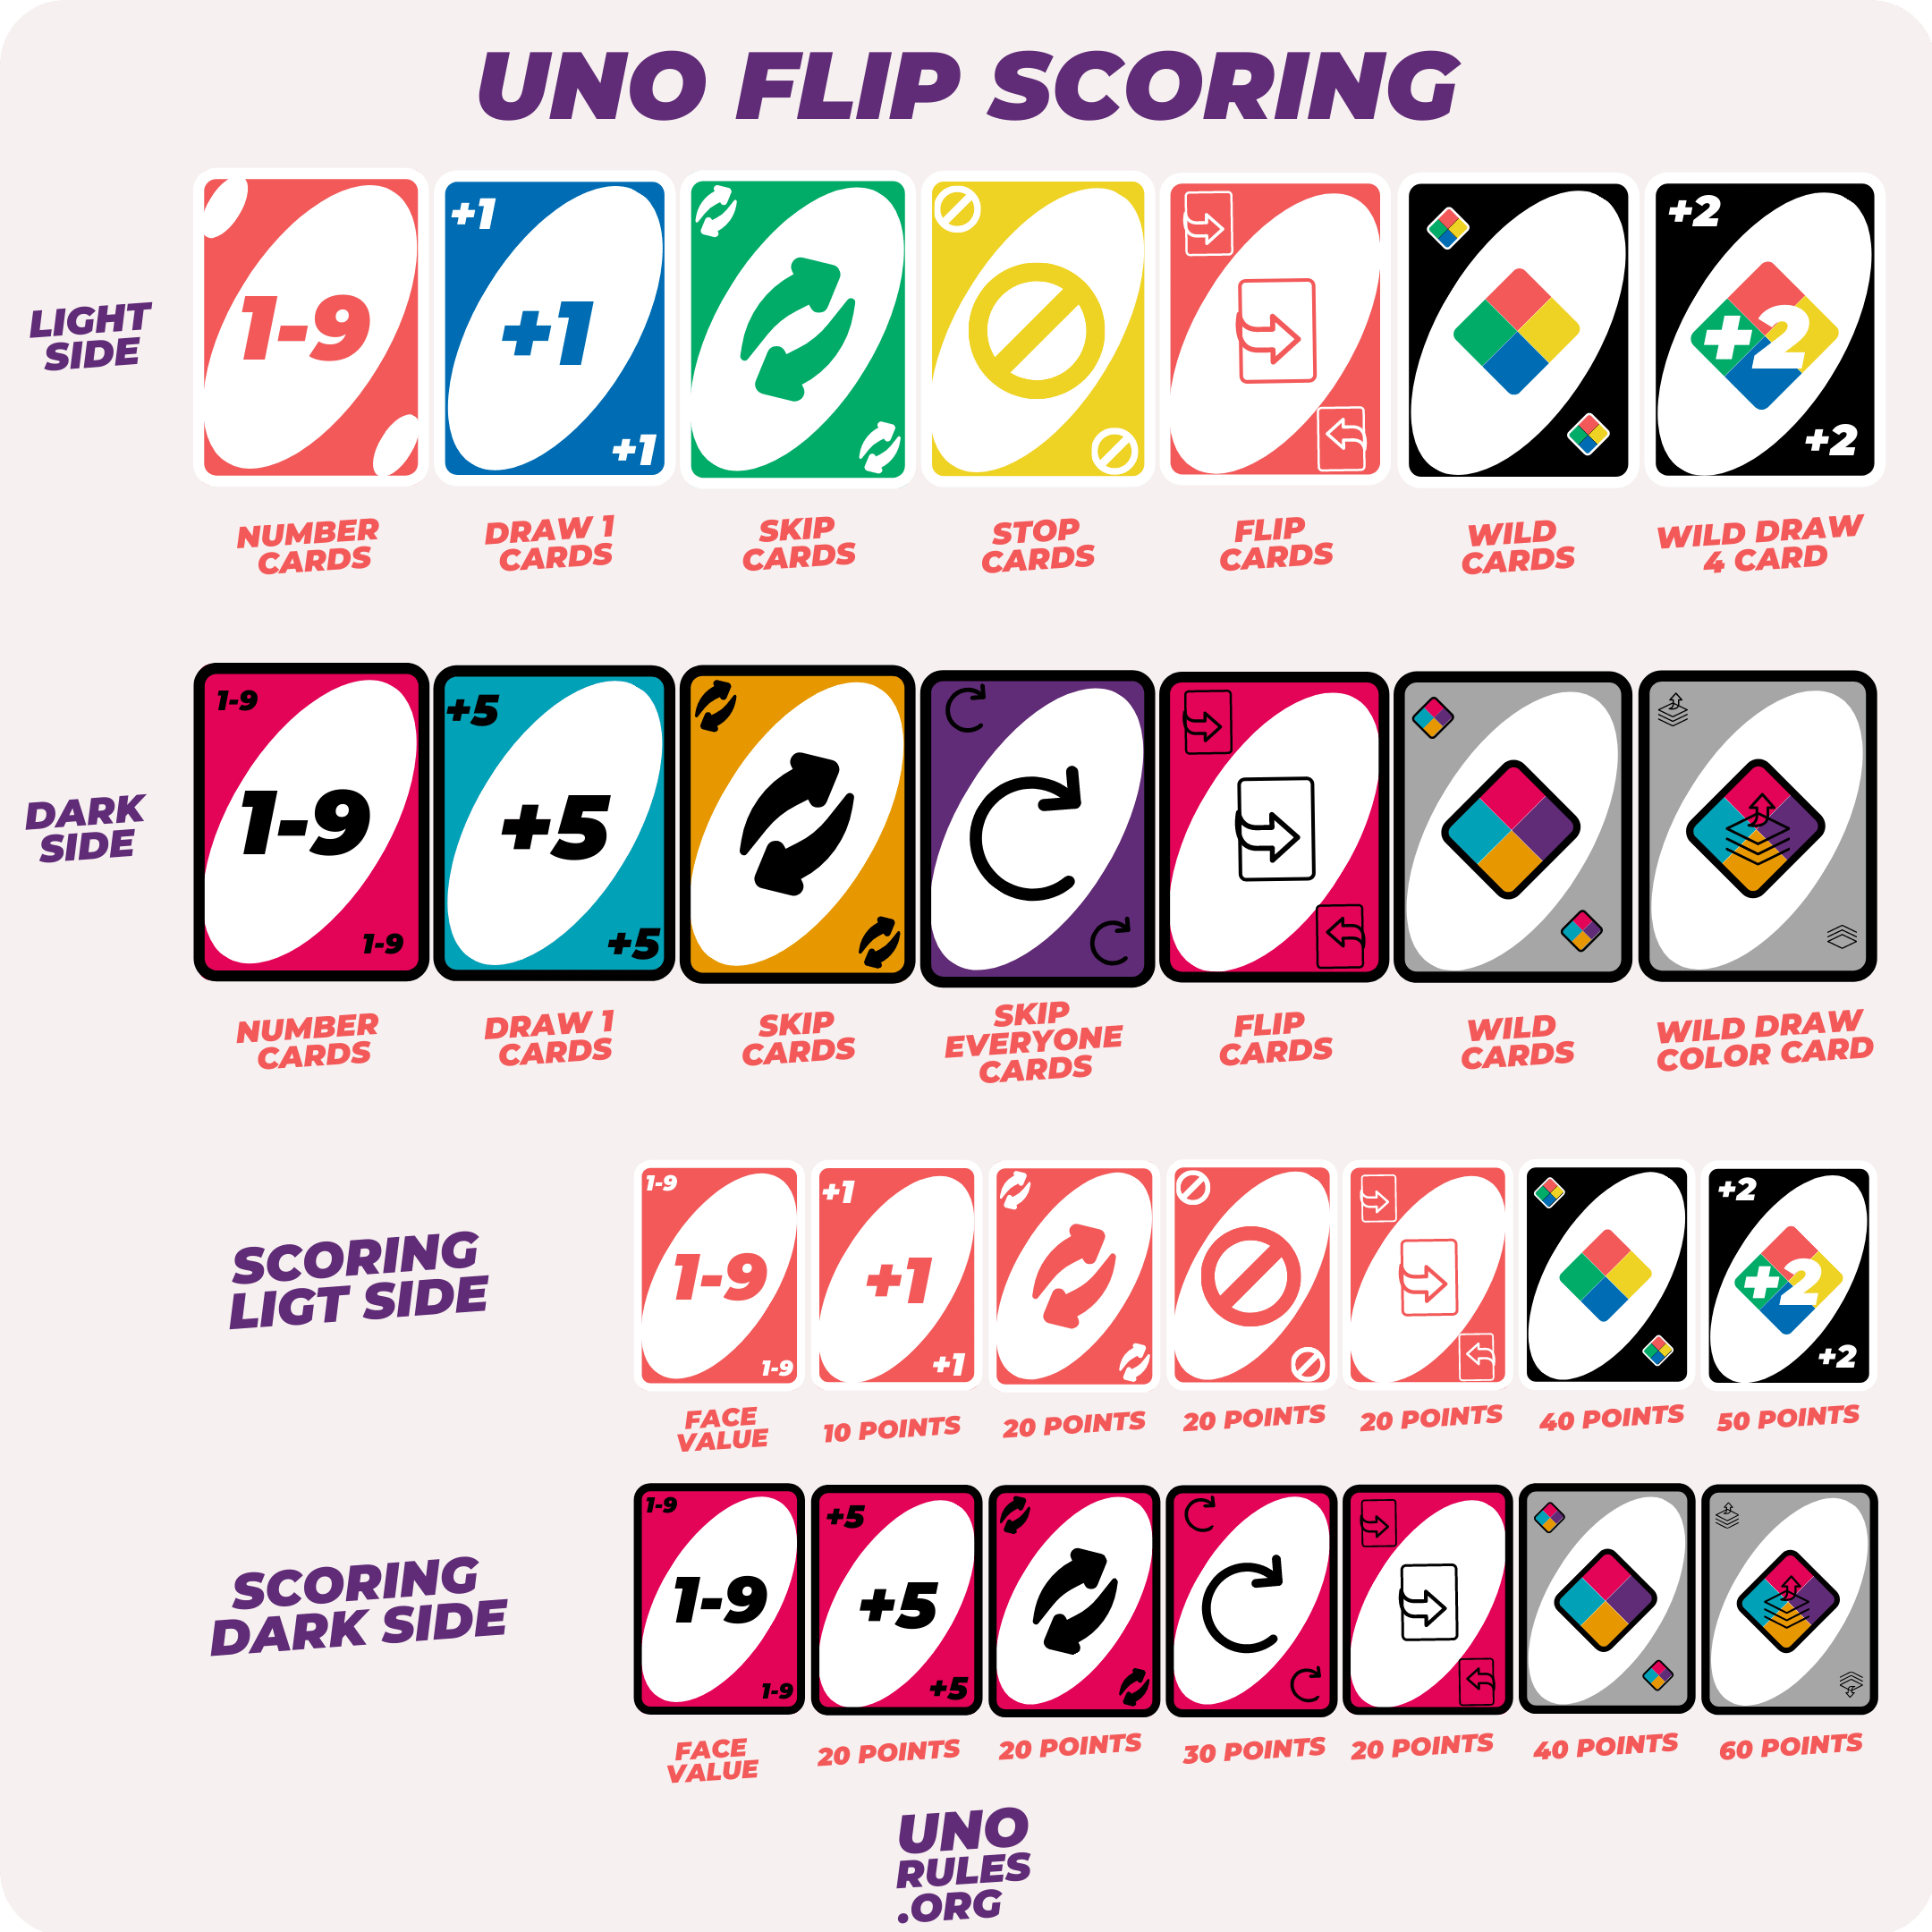 Uno Flip scoring and cards